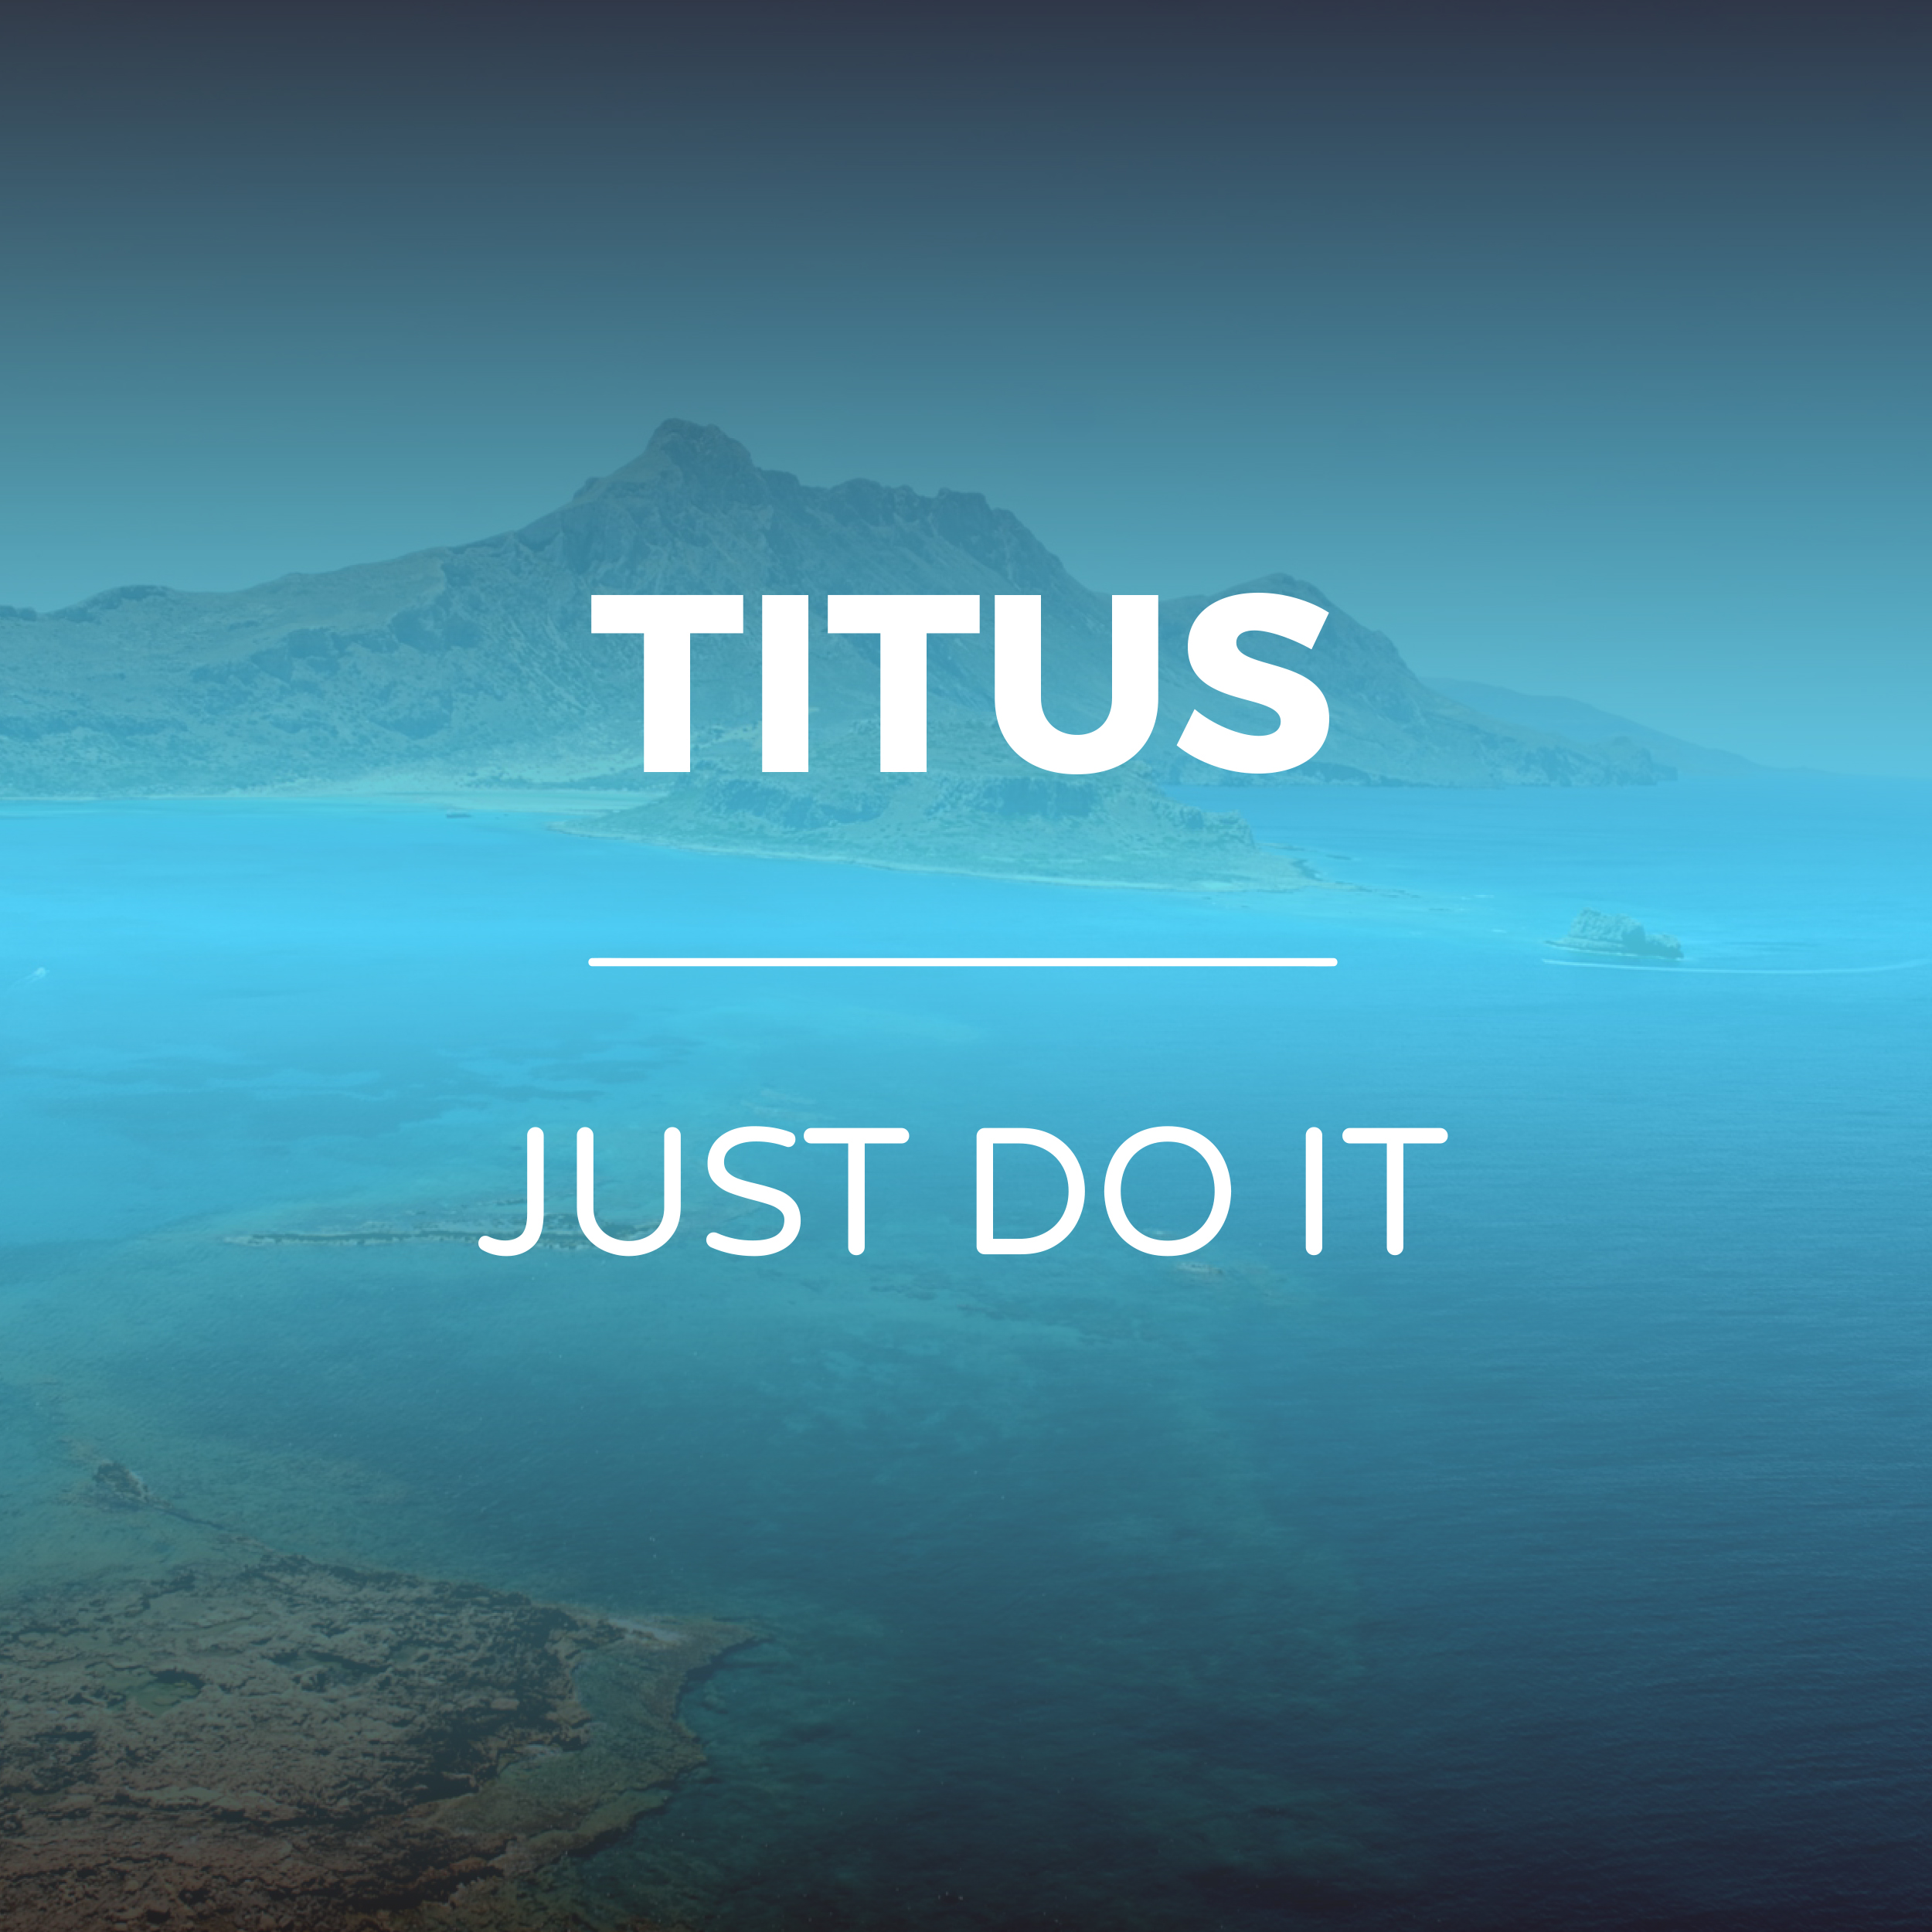 Titus - Just Do It Sermon Series - Hope Church Huddersfield